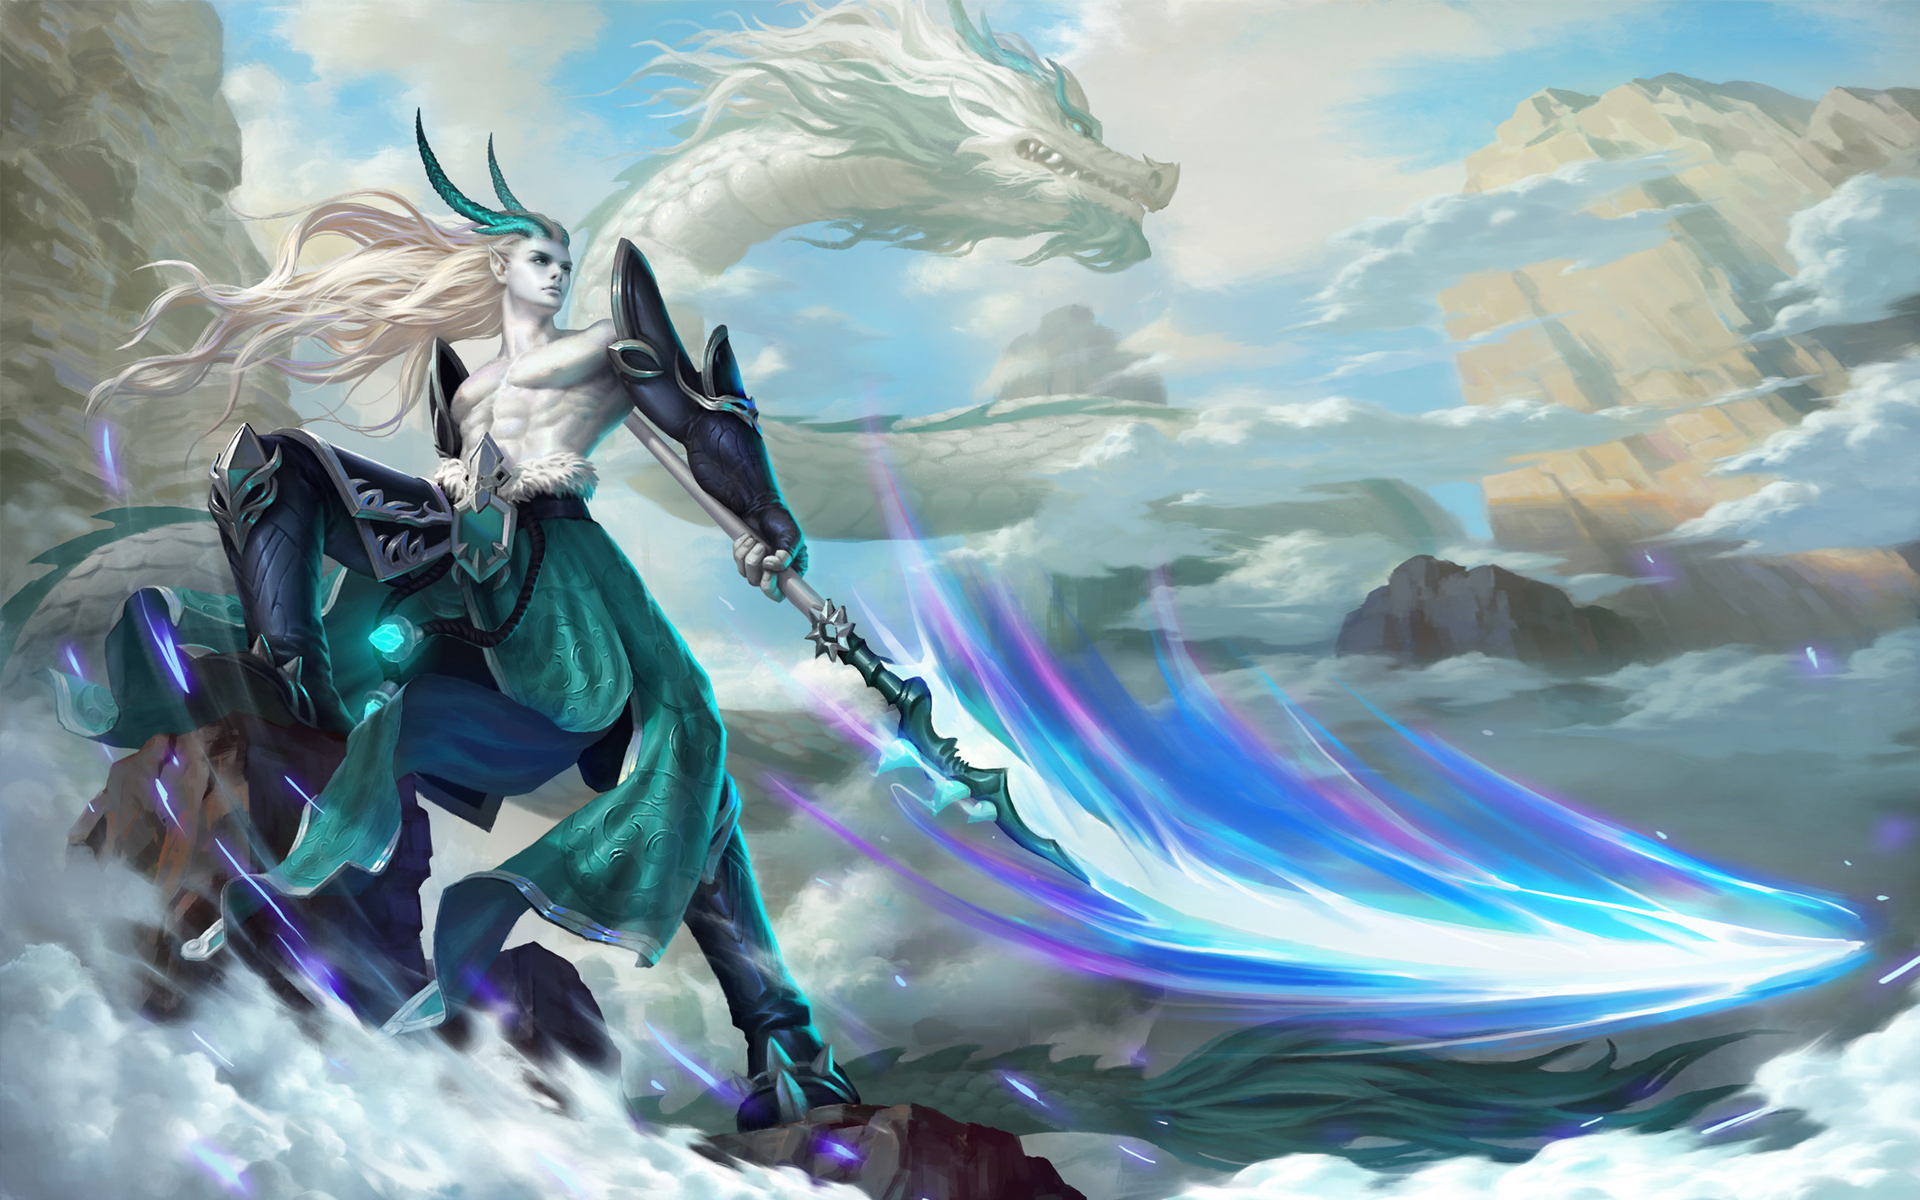 Fantasy White Dragon Warrior , HD Wallpaper & Backgrounds